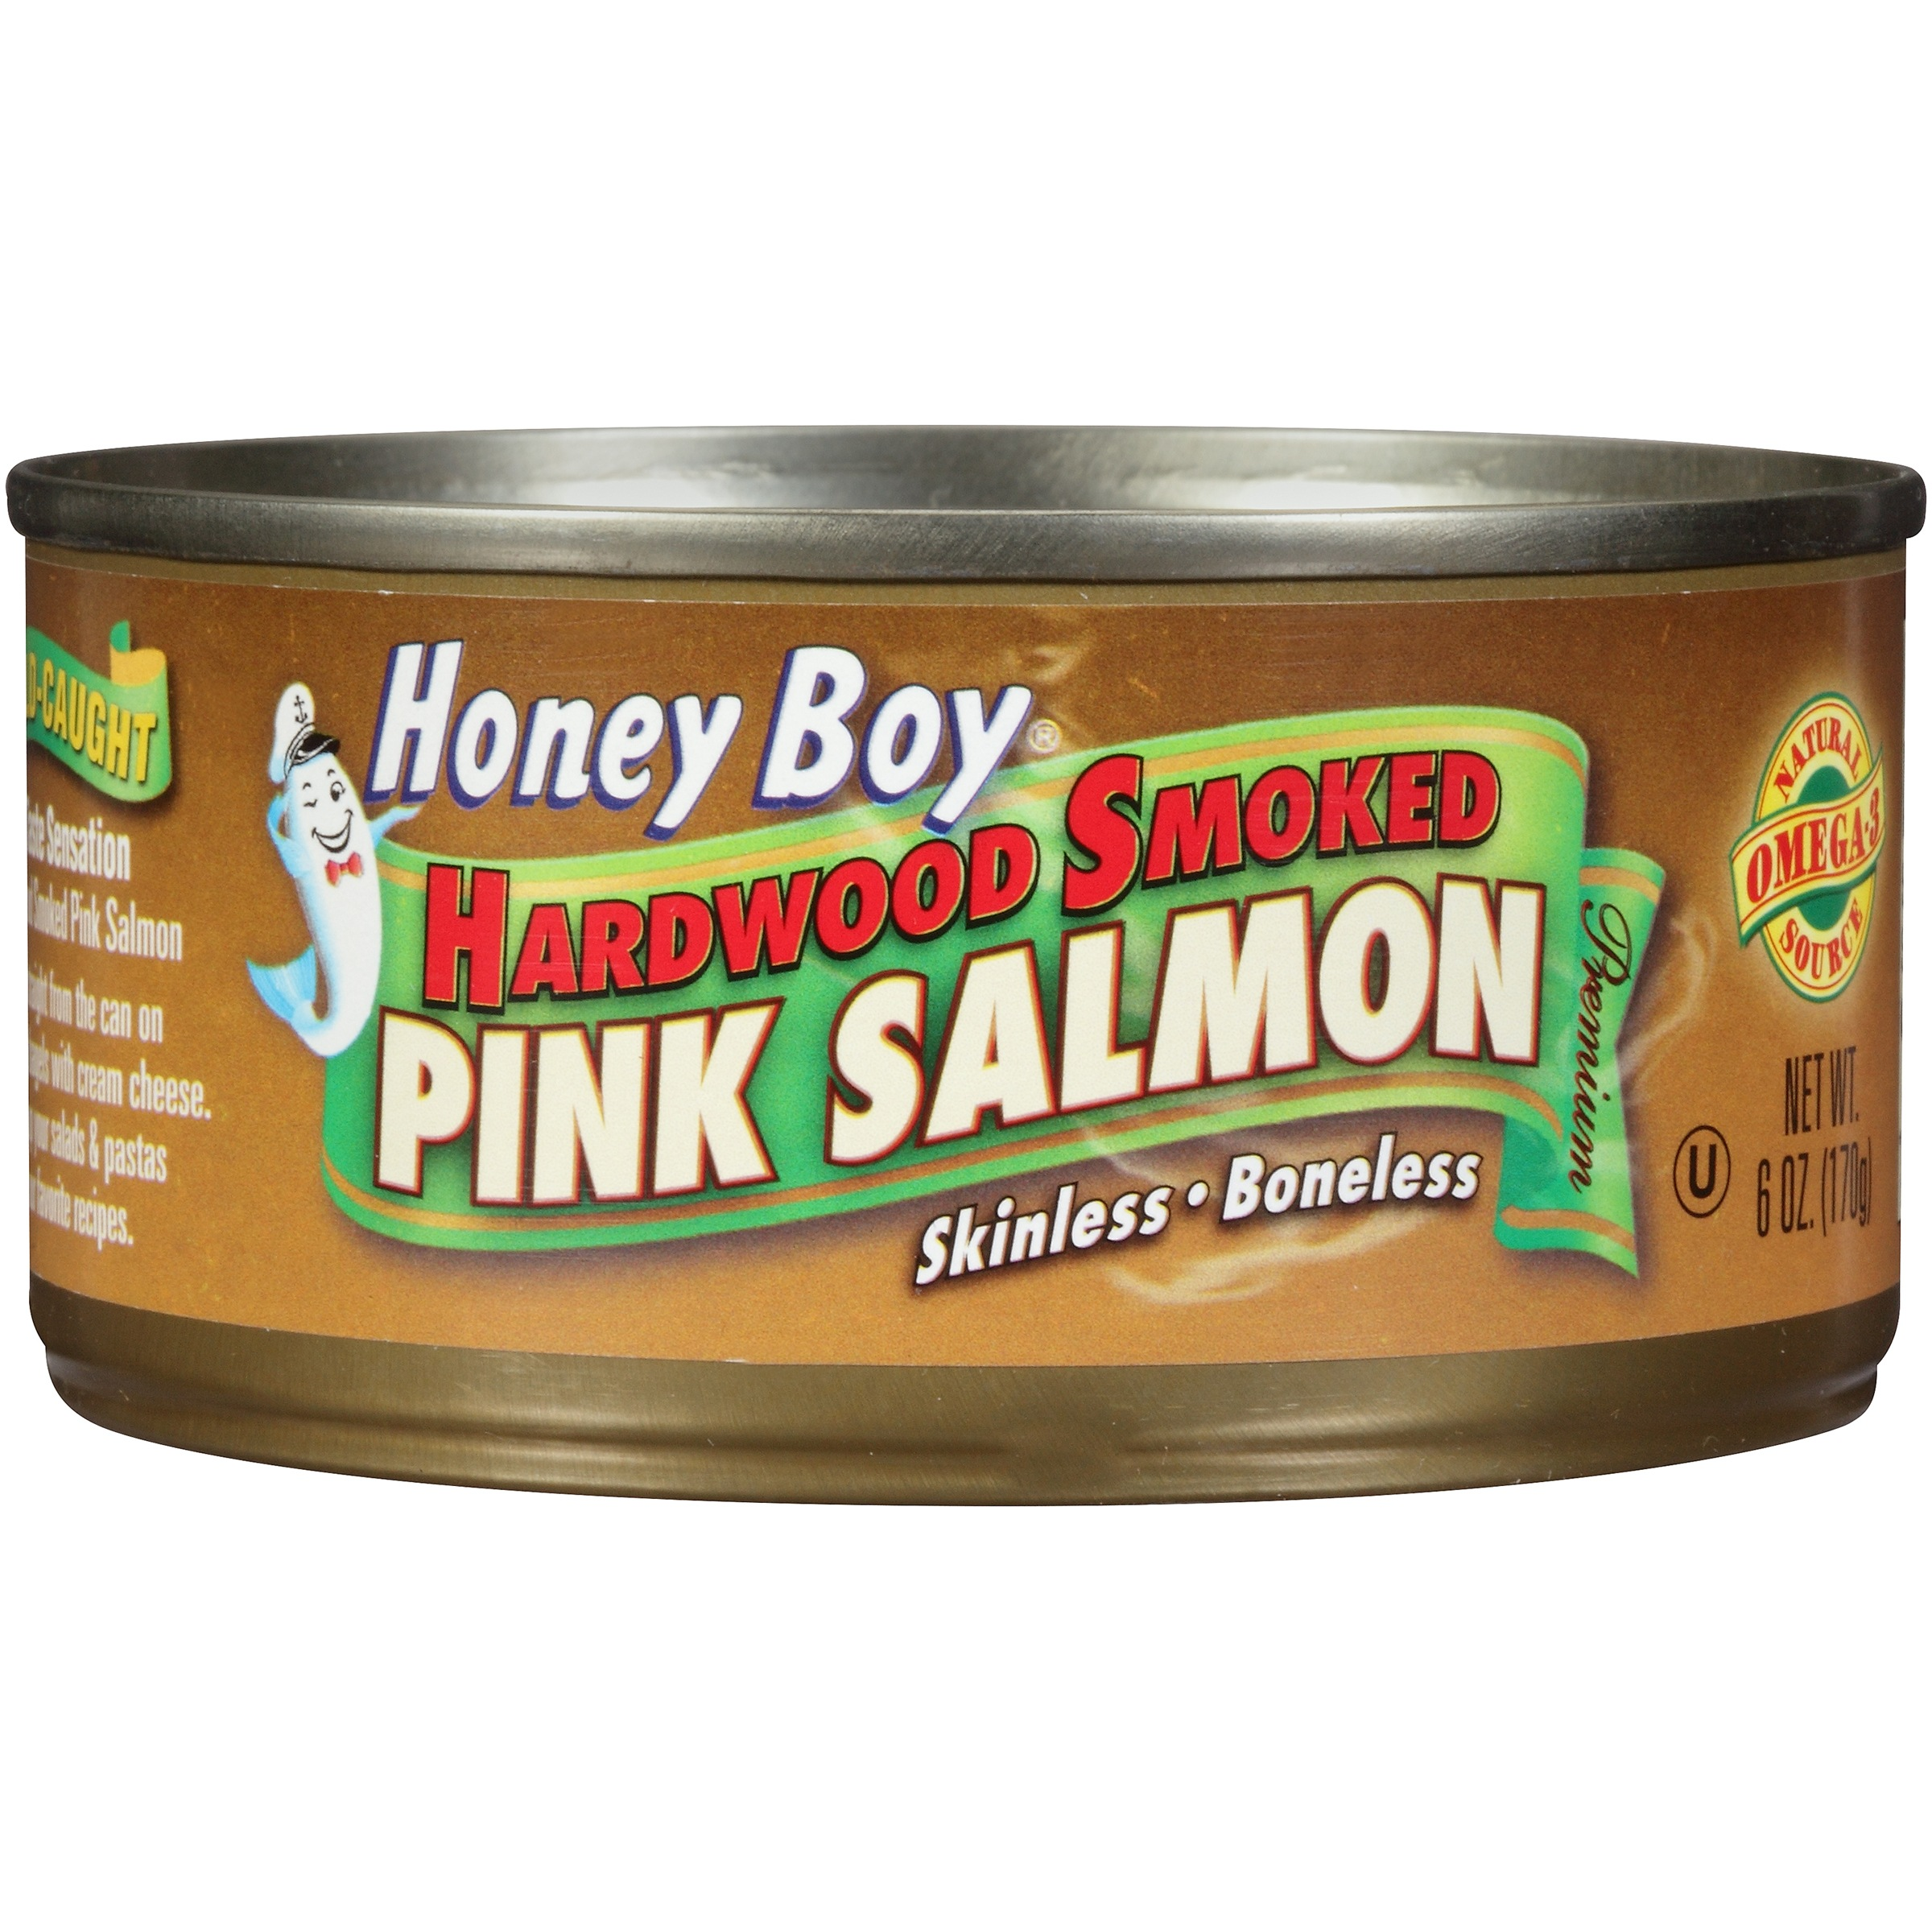 (2 Pack) Honey Boy® Hardwood Smoked Pink Salmon 6 oz. Can